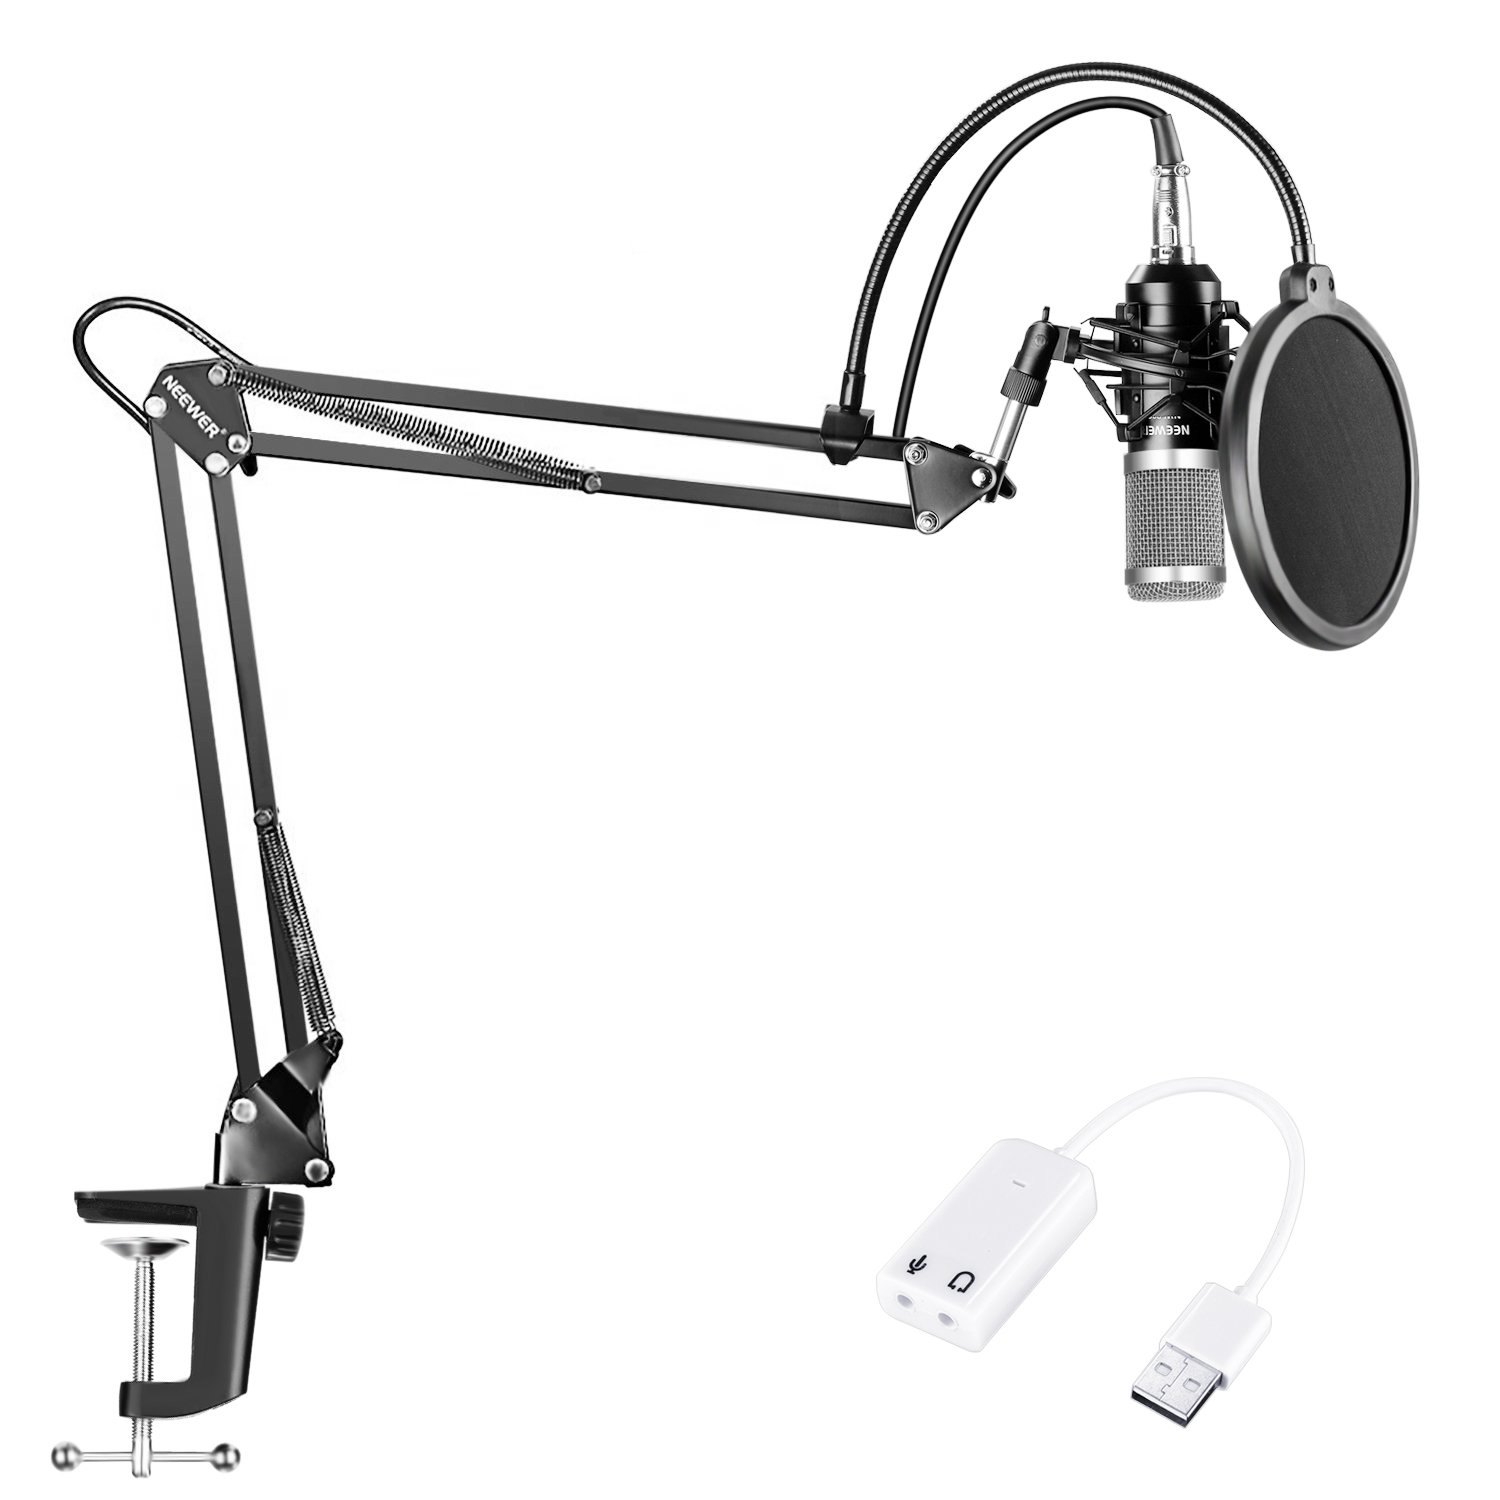 Neewer NW-800 Condenser Microphone (Black/Silver)Kit with USB Sound Card Adapter, Adjustable Suspension Scissor Arm Stand, Shock Mount, Pop Filter for Studio Recording Broadcast YouTube Live Periscope 40092978